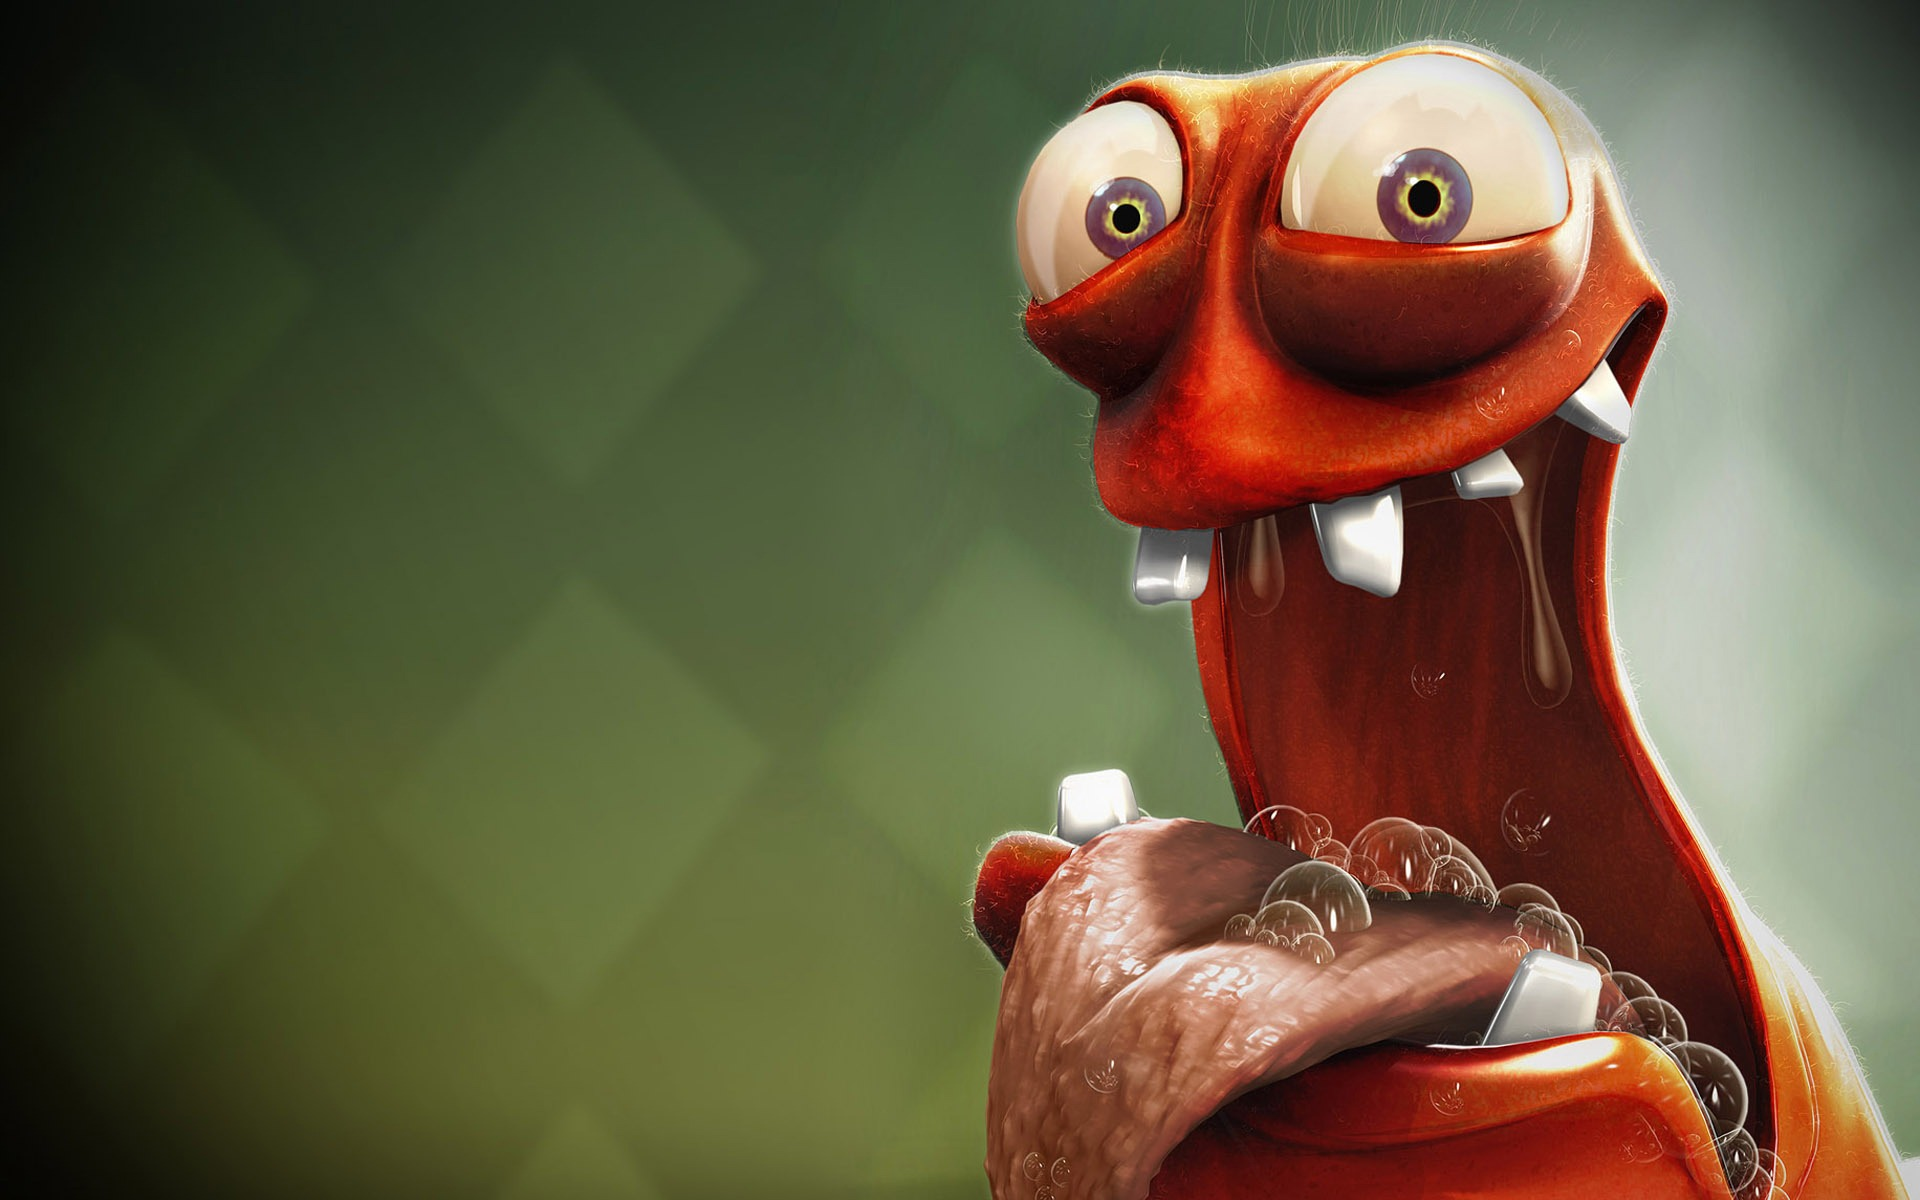 Bobby Booble Wallpaper 3d Characters 3d Wallpapers In Jpg Format For